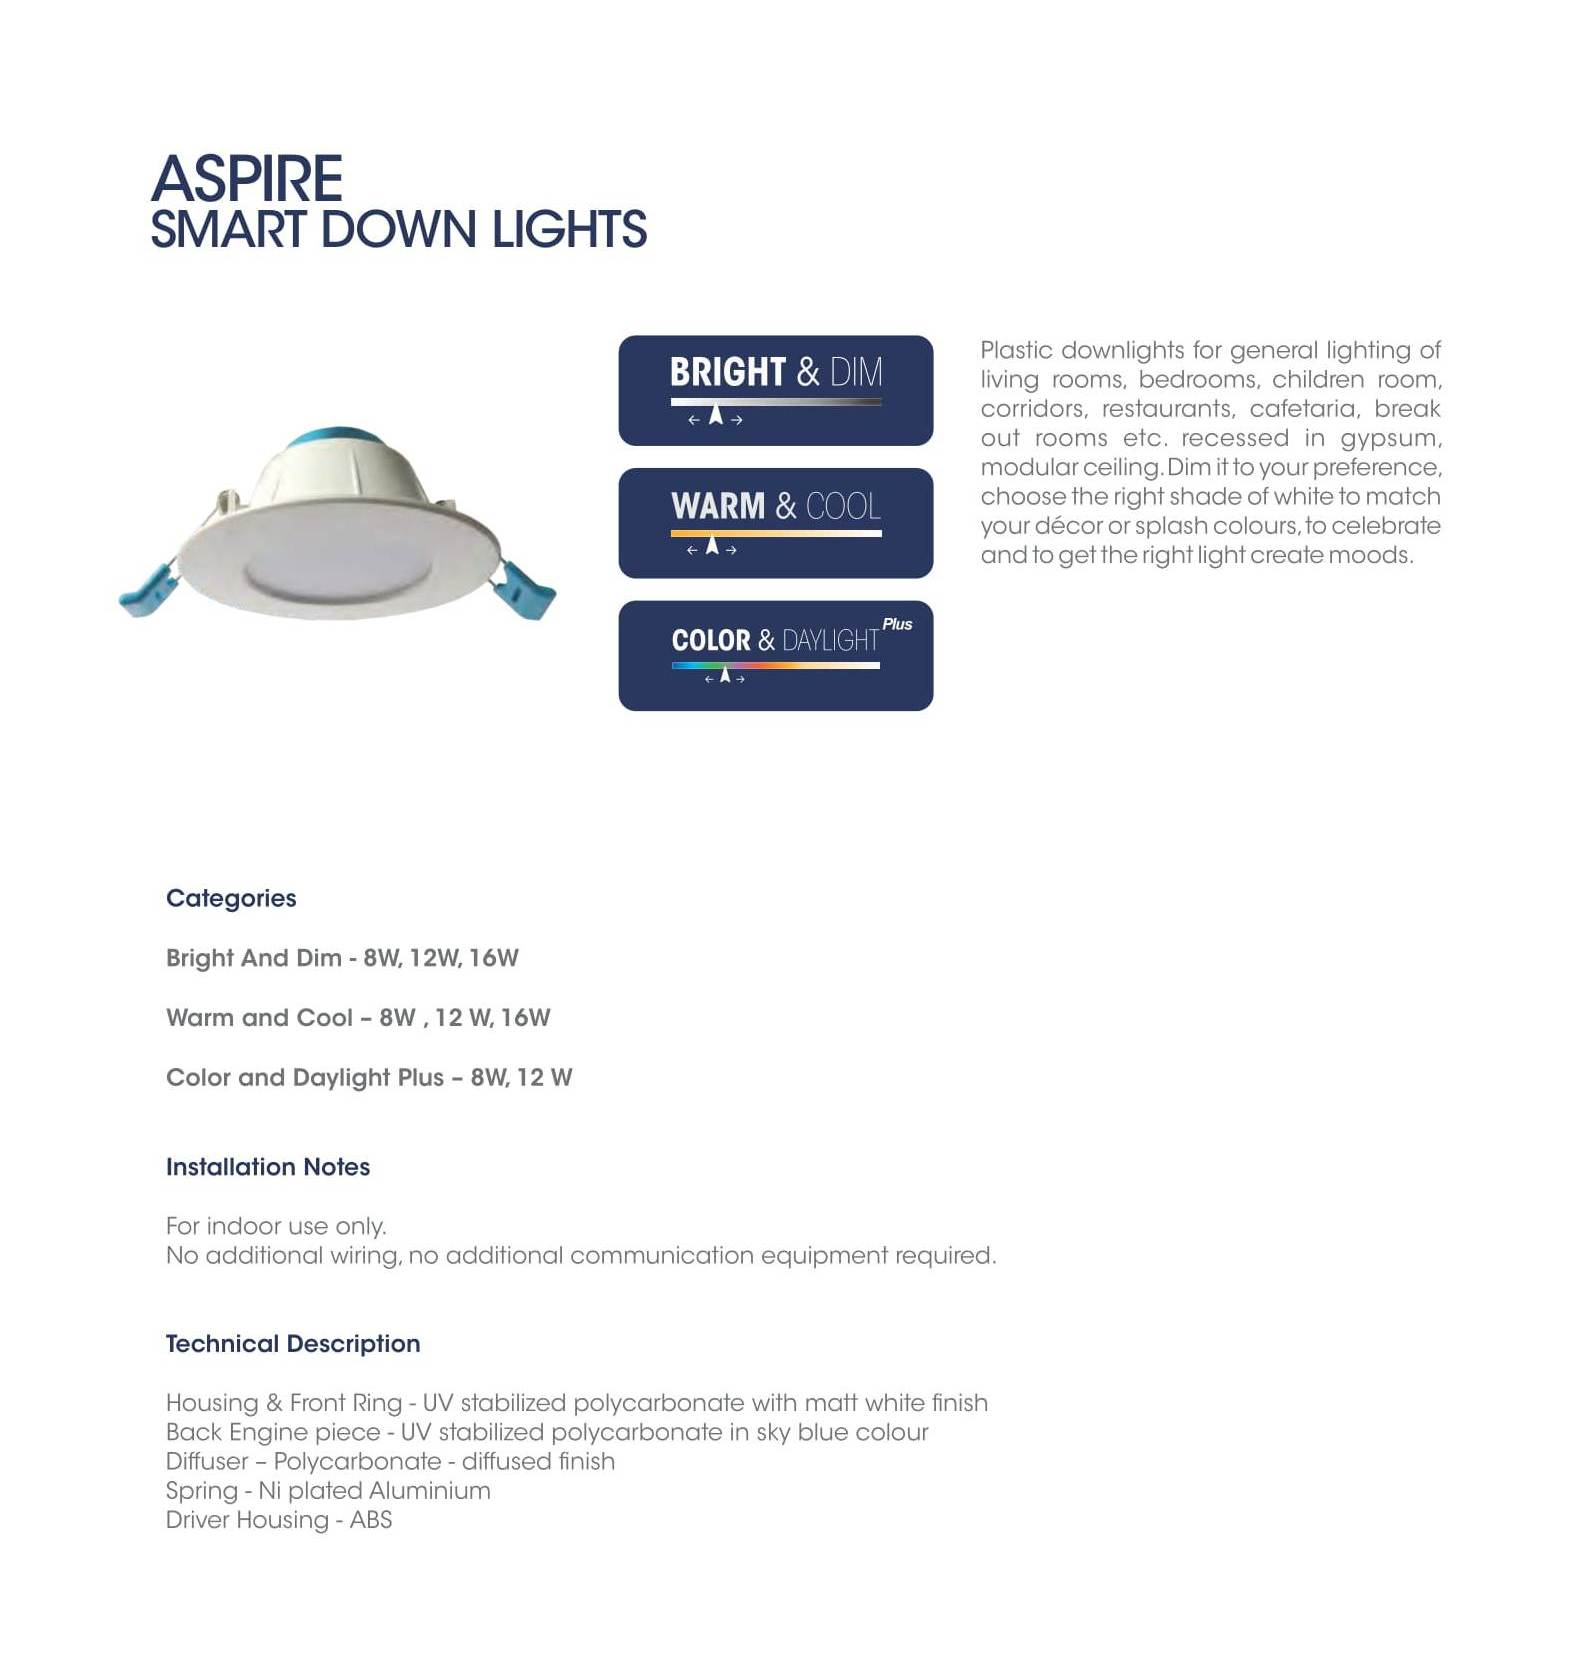 Aspire Smart Down Lights